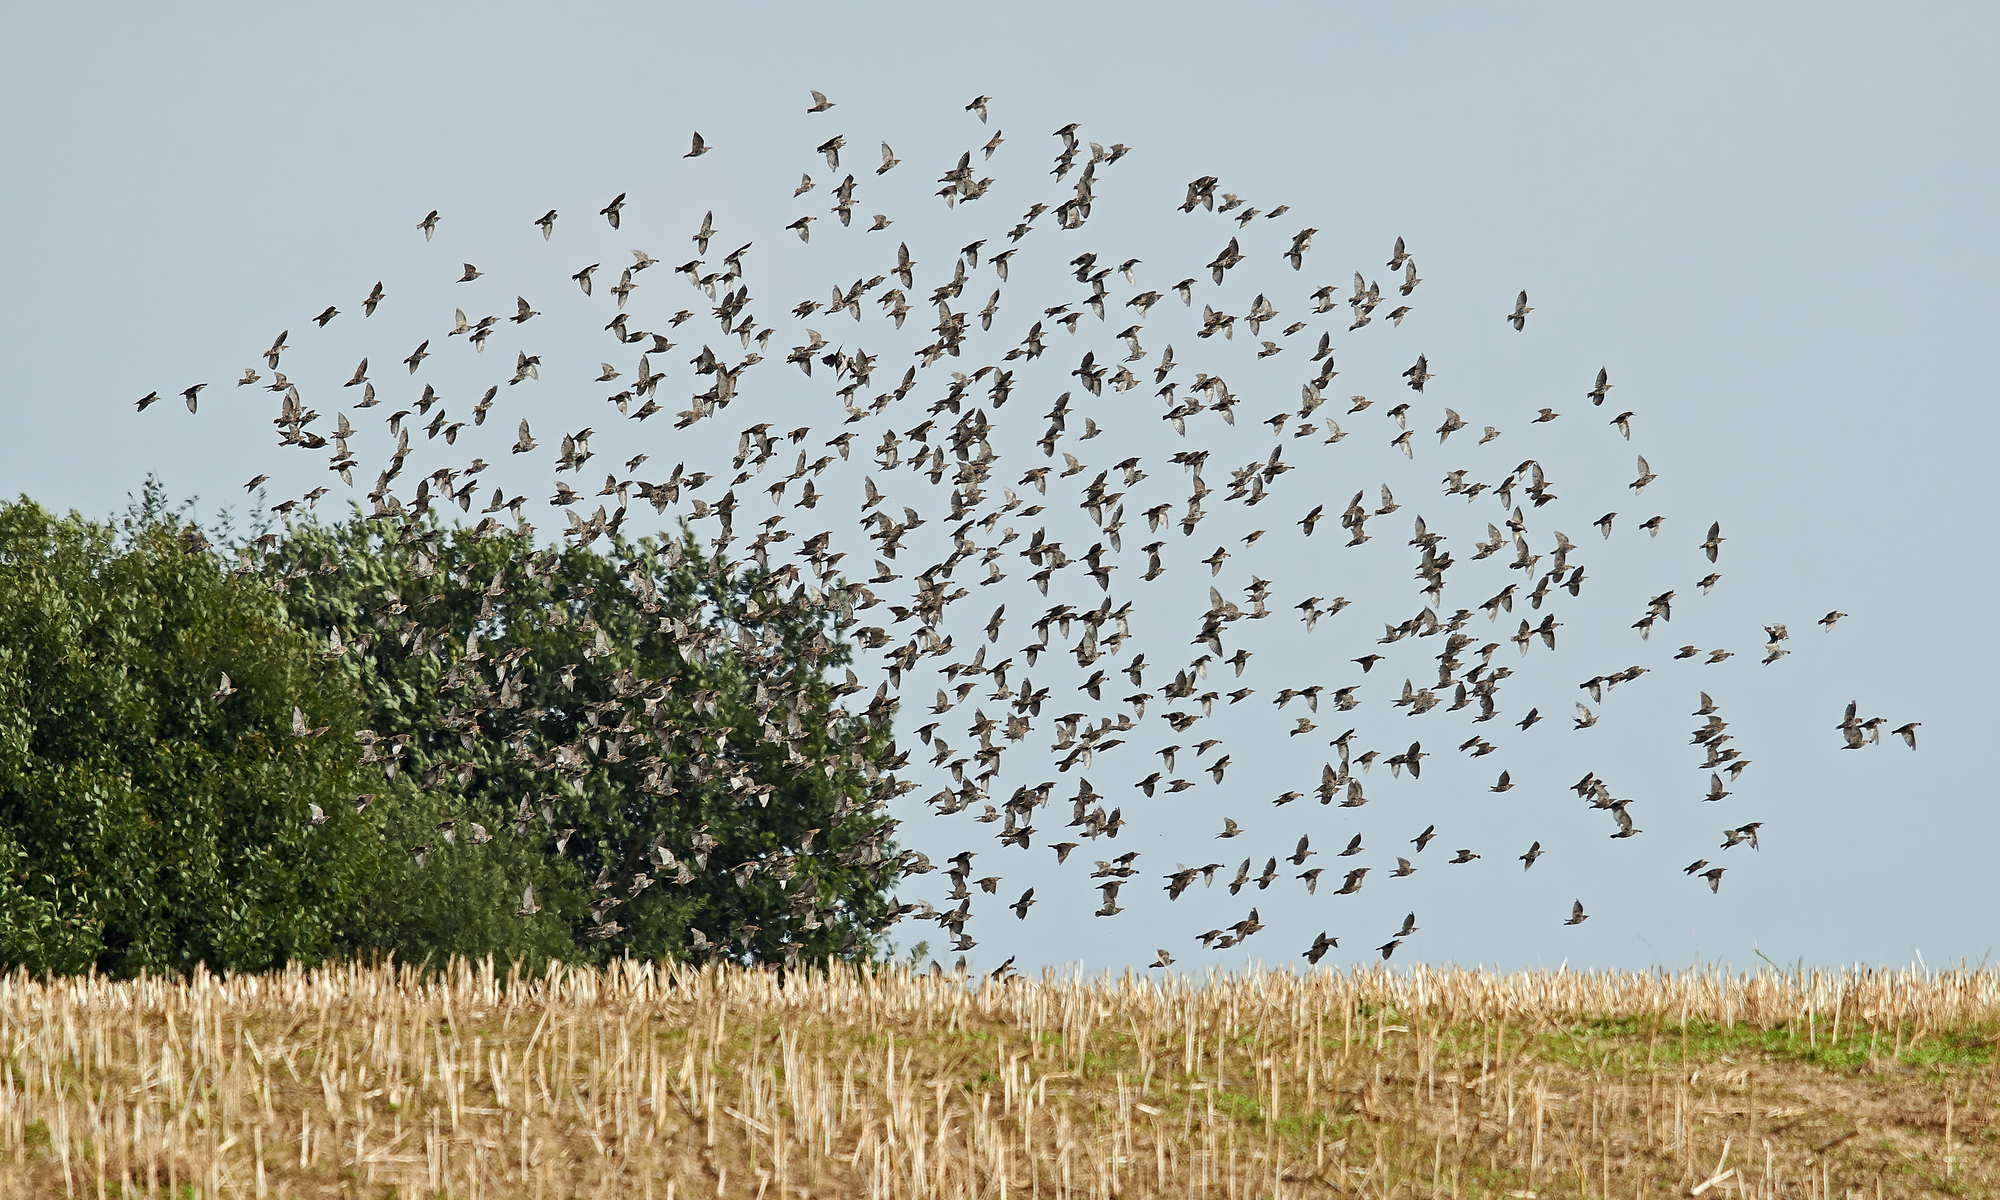 Laser scarecrows helps keep cornfields clear of bird pests